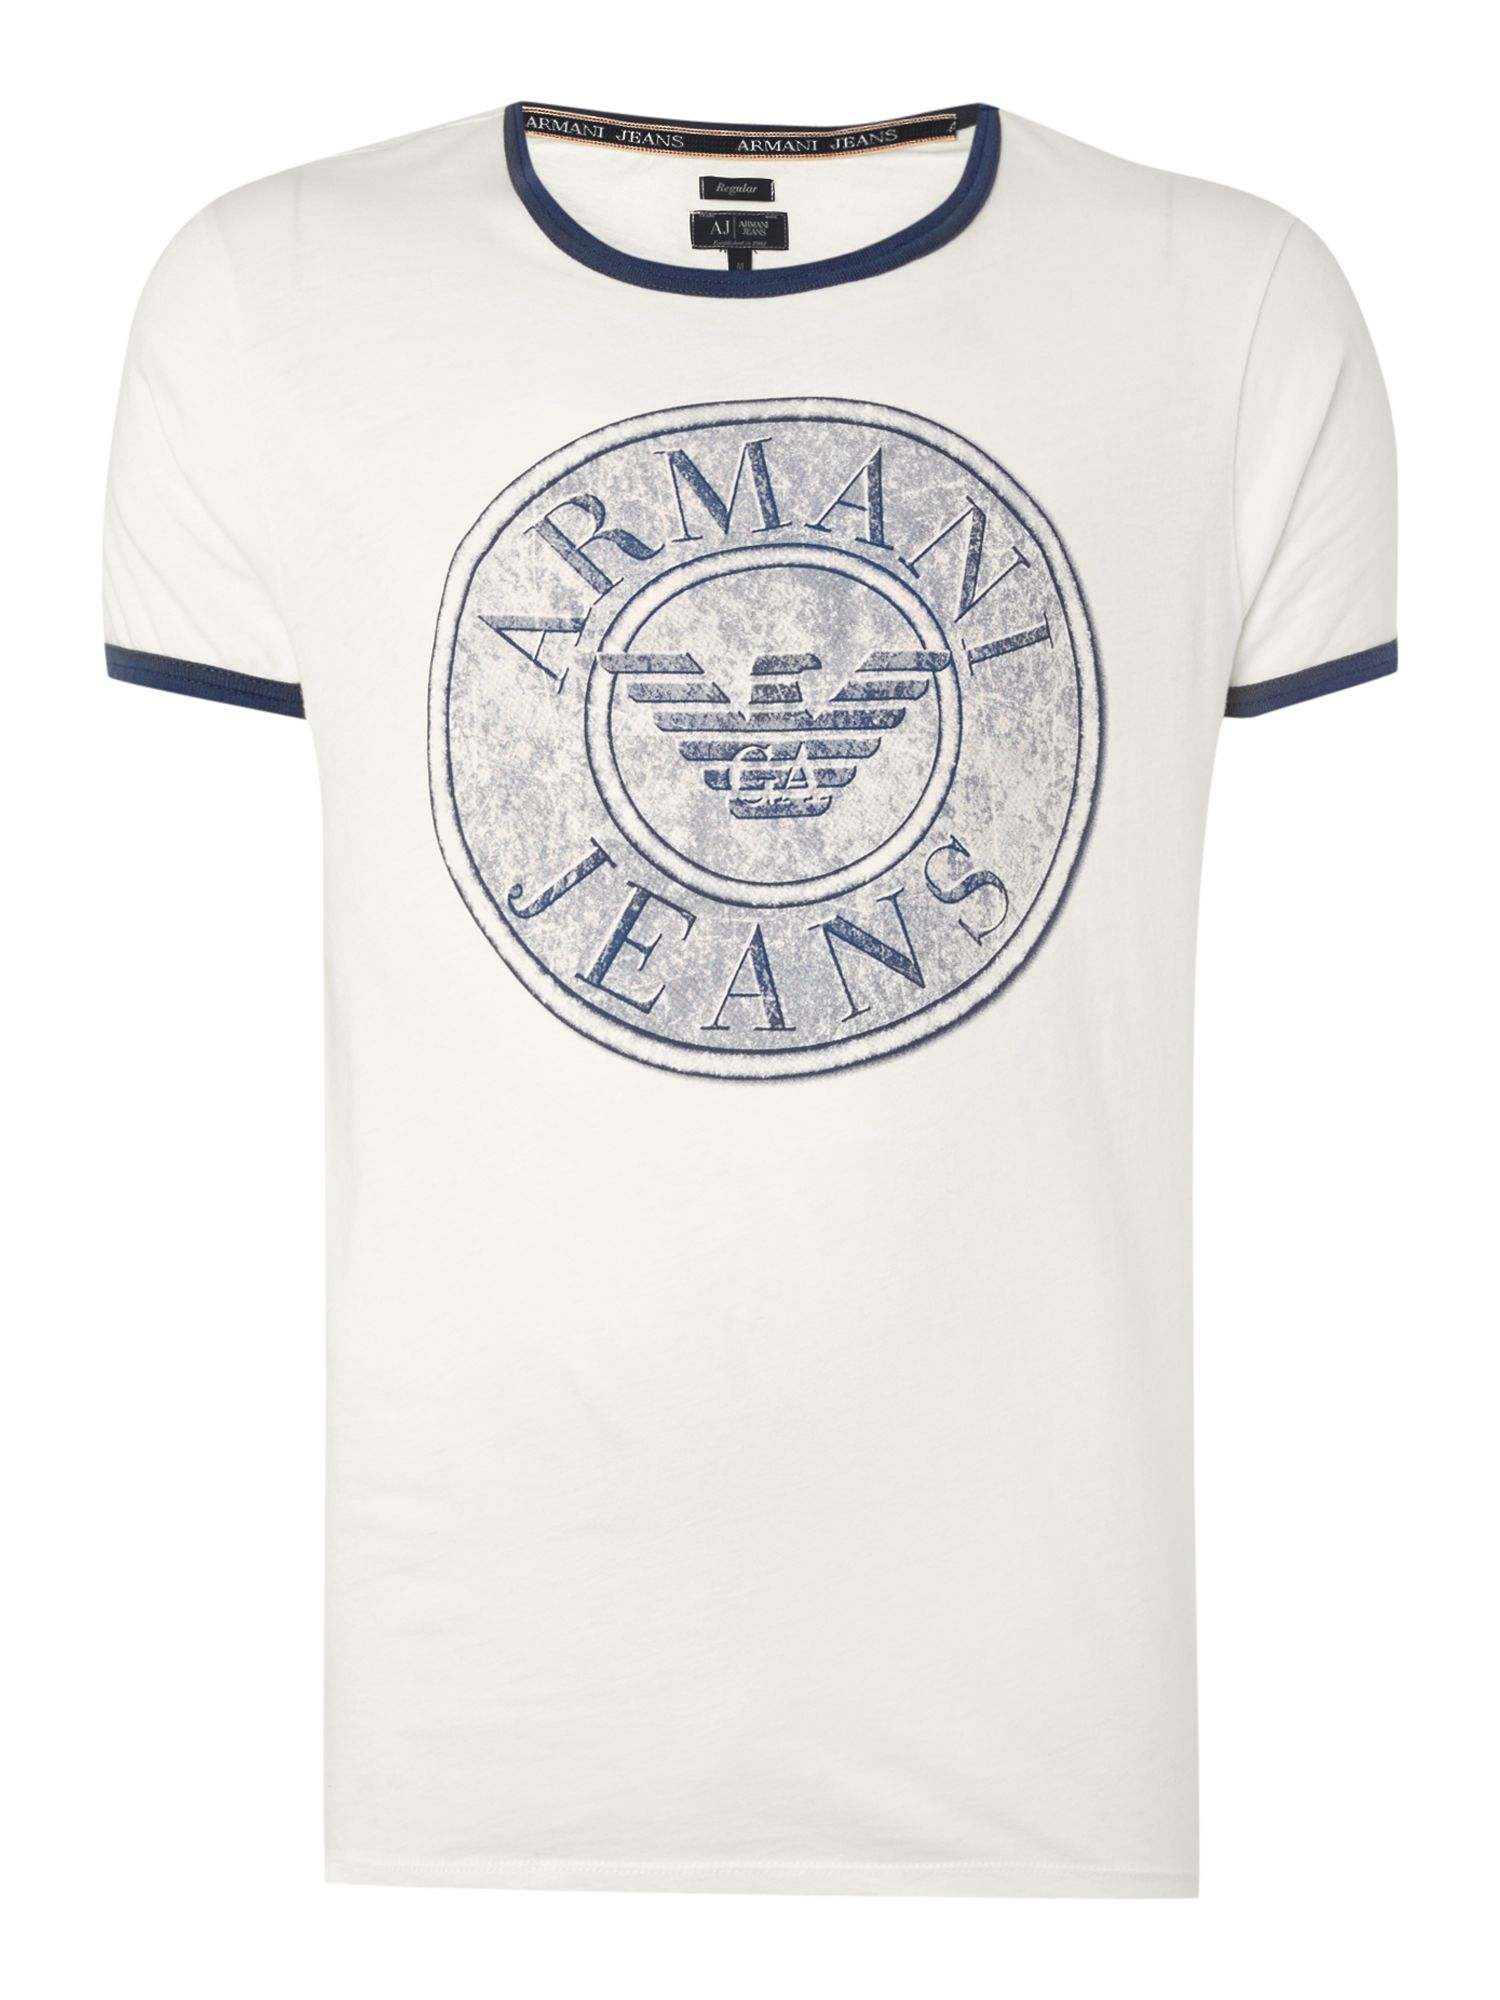 Armani jeans regular fit button logo printed t shirt in for Logo printed t shirts